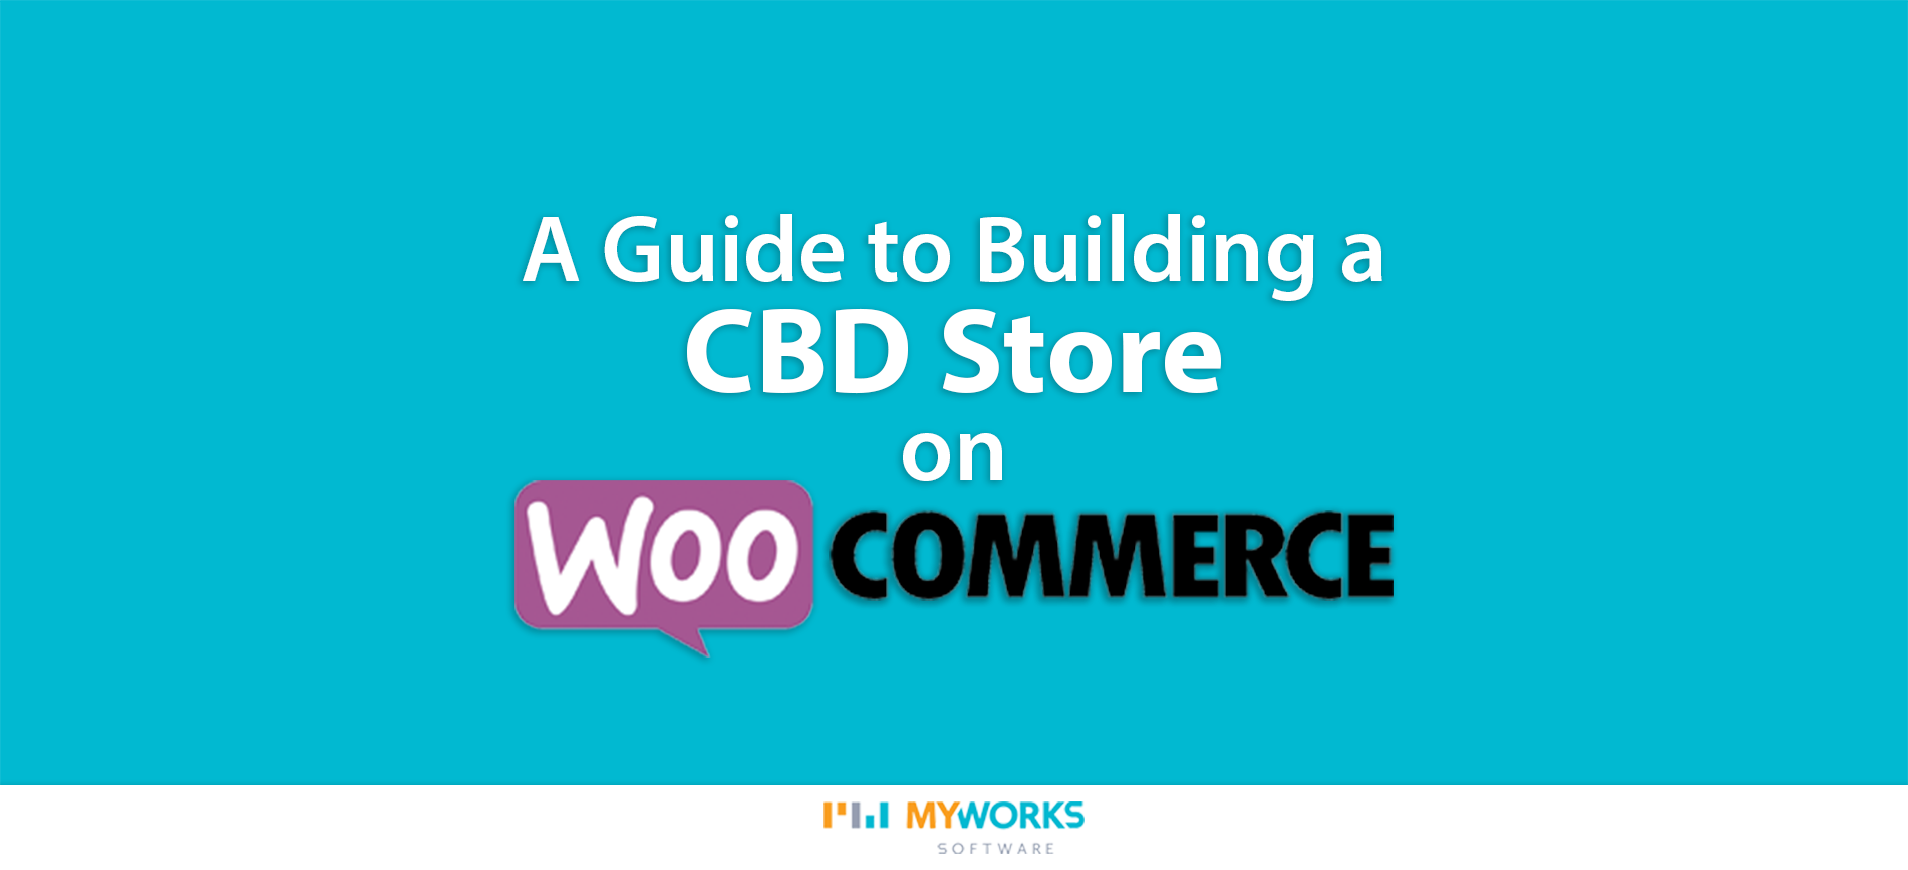 CBD Online Store: A Guide to Building a WooCommerce CBD Store